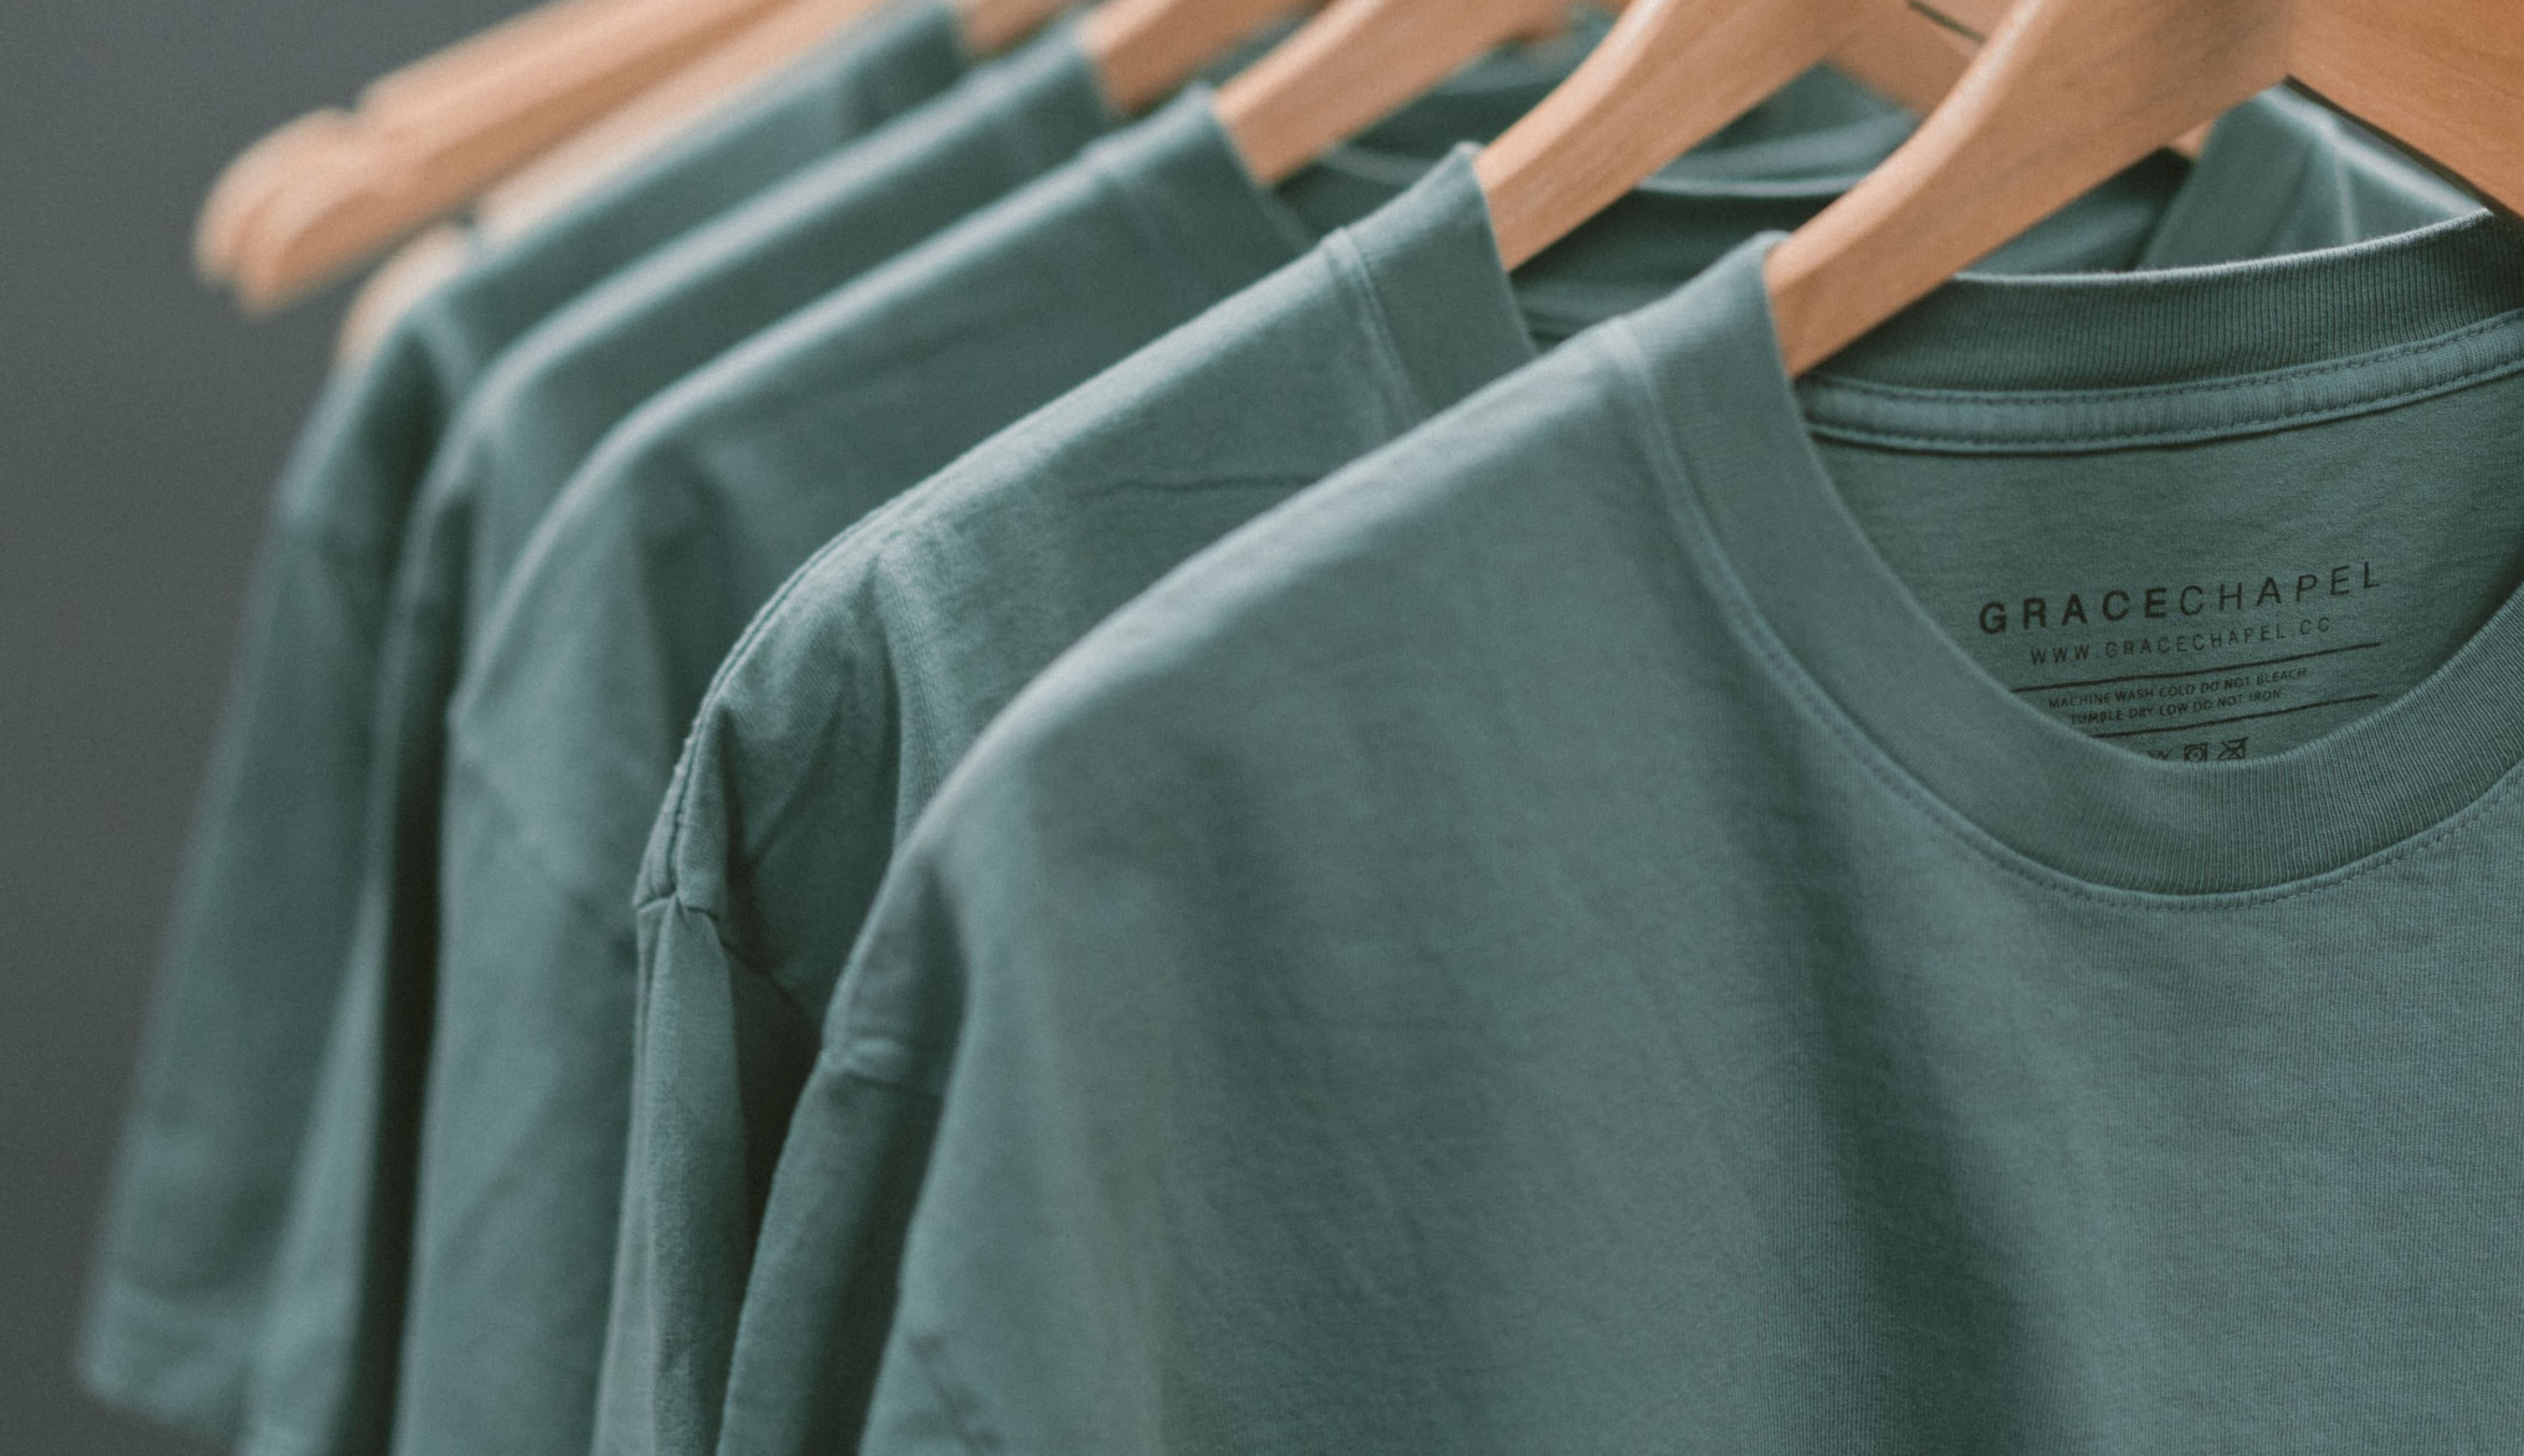 Close-up image of a rack of t-shirts.